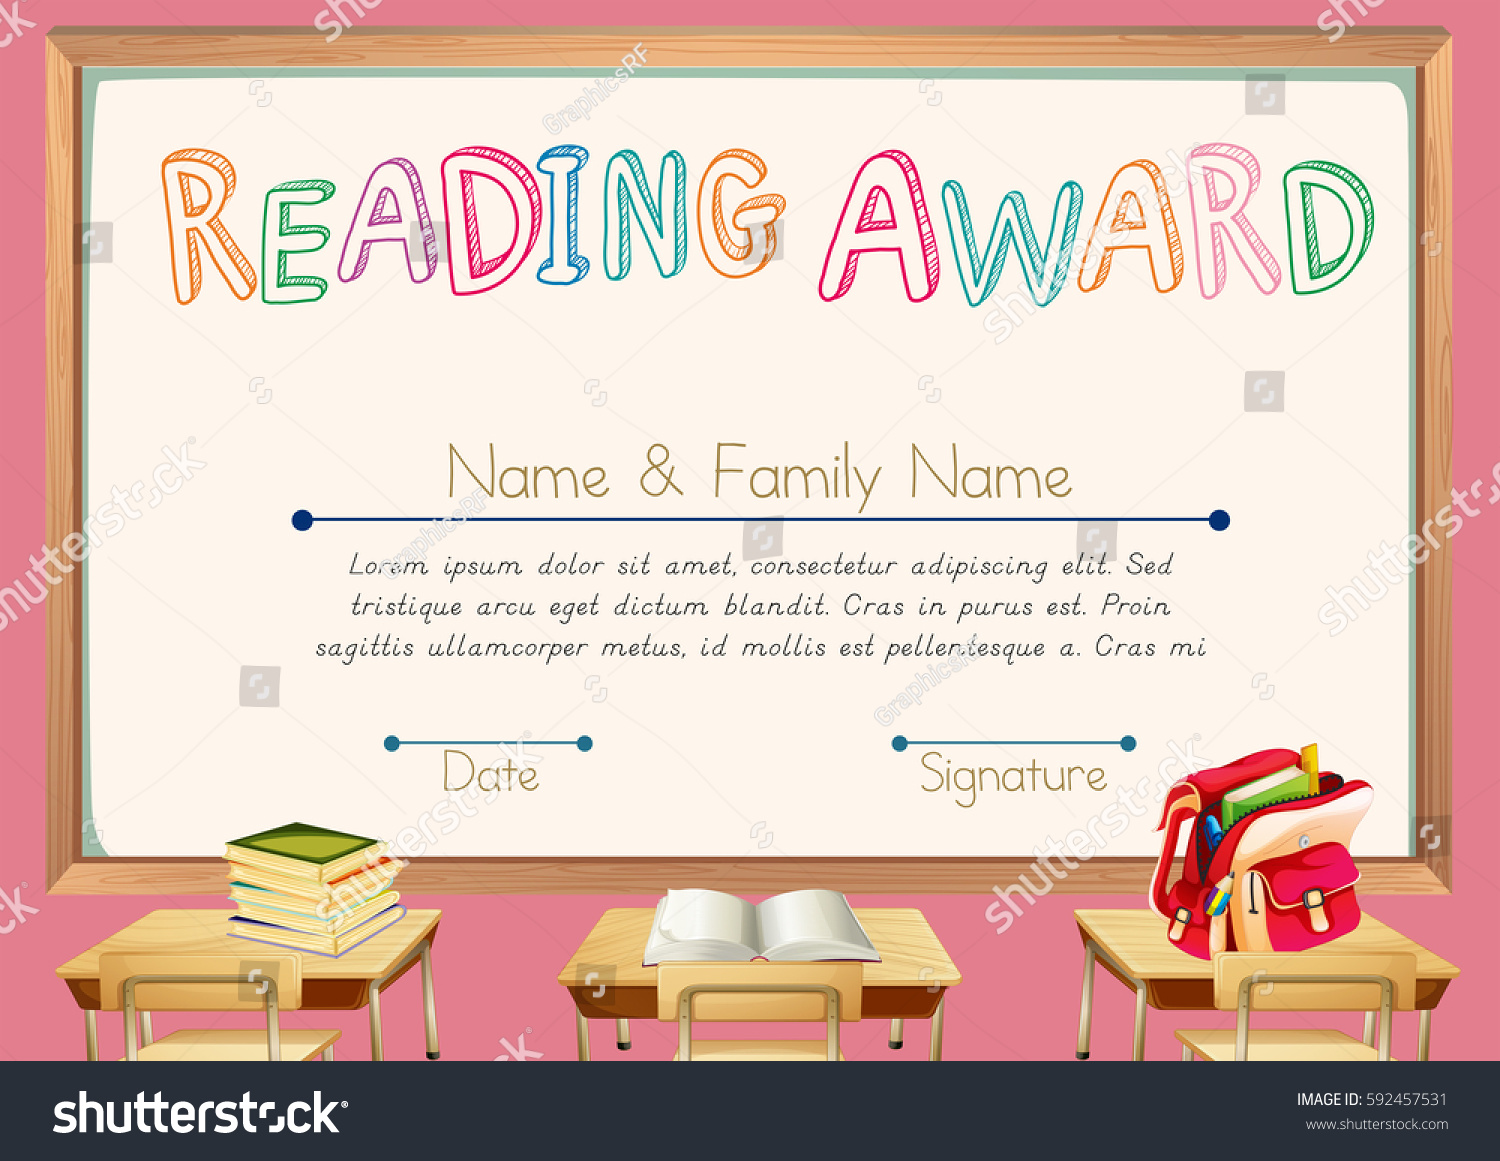 Certificate template reading award illustration stock vector certificate template for reading award illustration alramifo Images